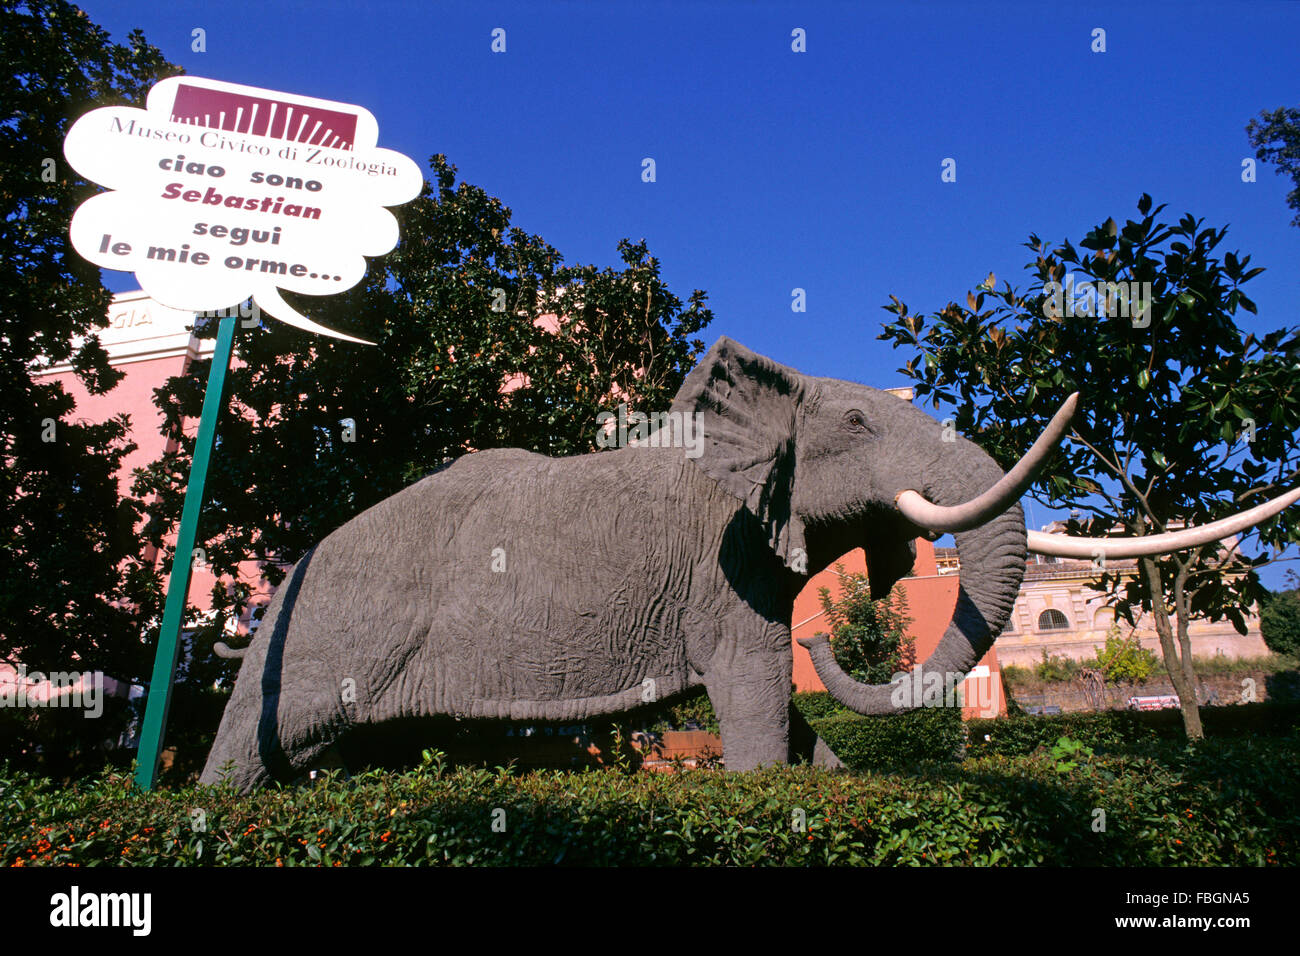 Statue of african elephant (Loxodonta africana) nearby the Zoology Museum at the Bioparco of Rome, Italy - Stock Image